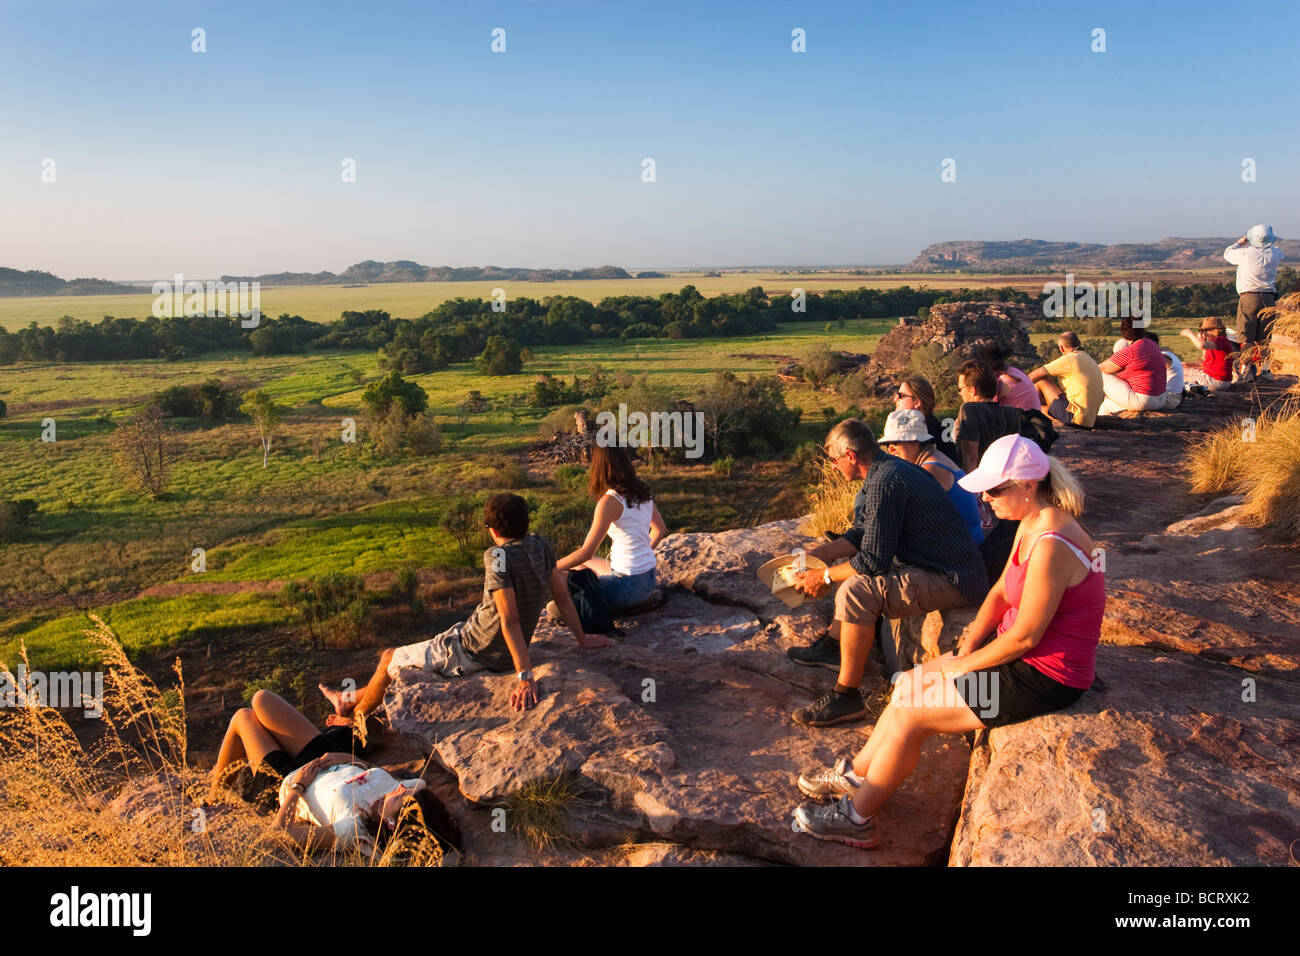 Tourists waiting for the sun to set from the top of Ubirr Rock in Kakadu National Park - Stock Image